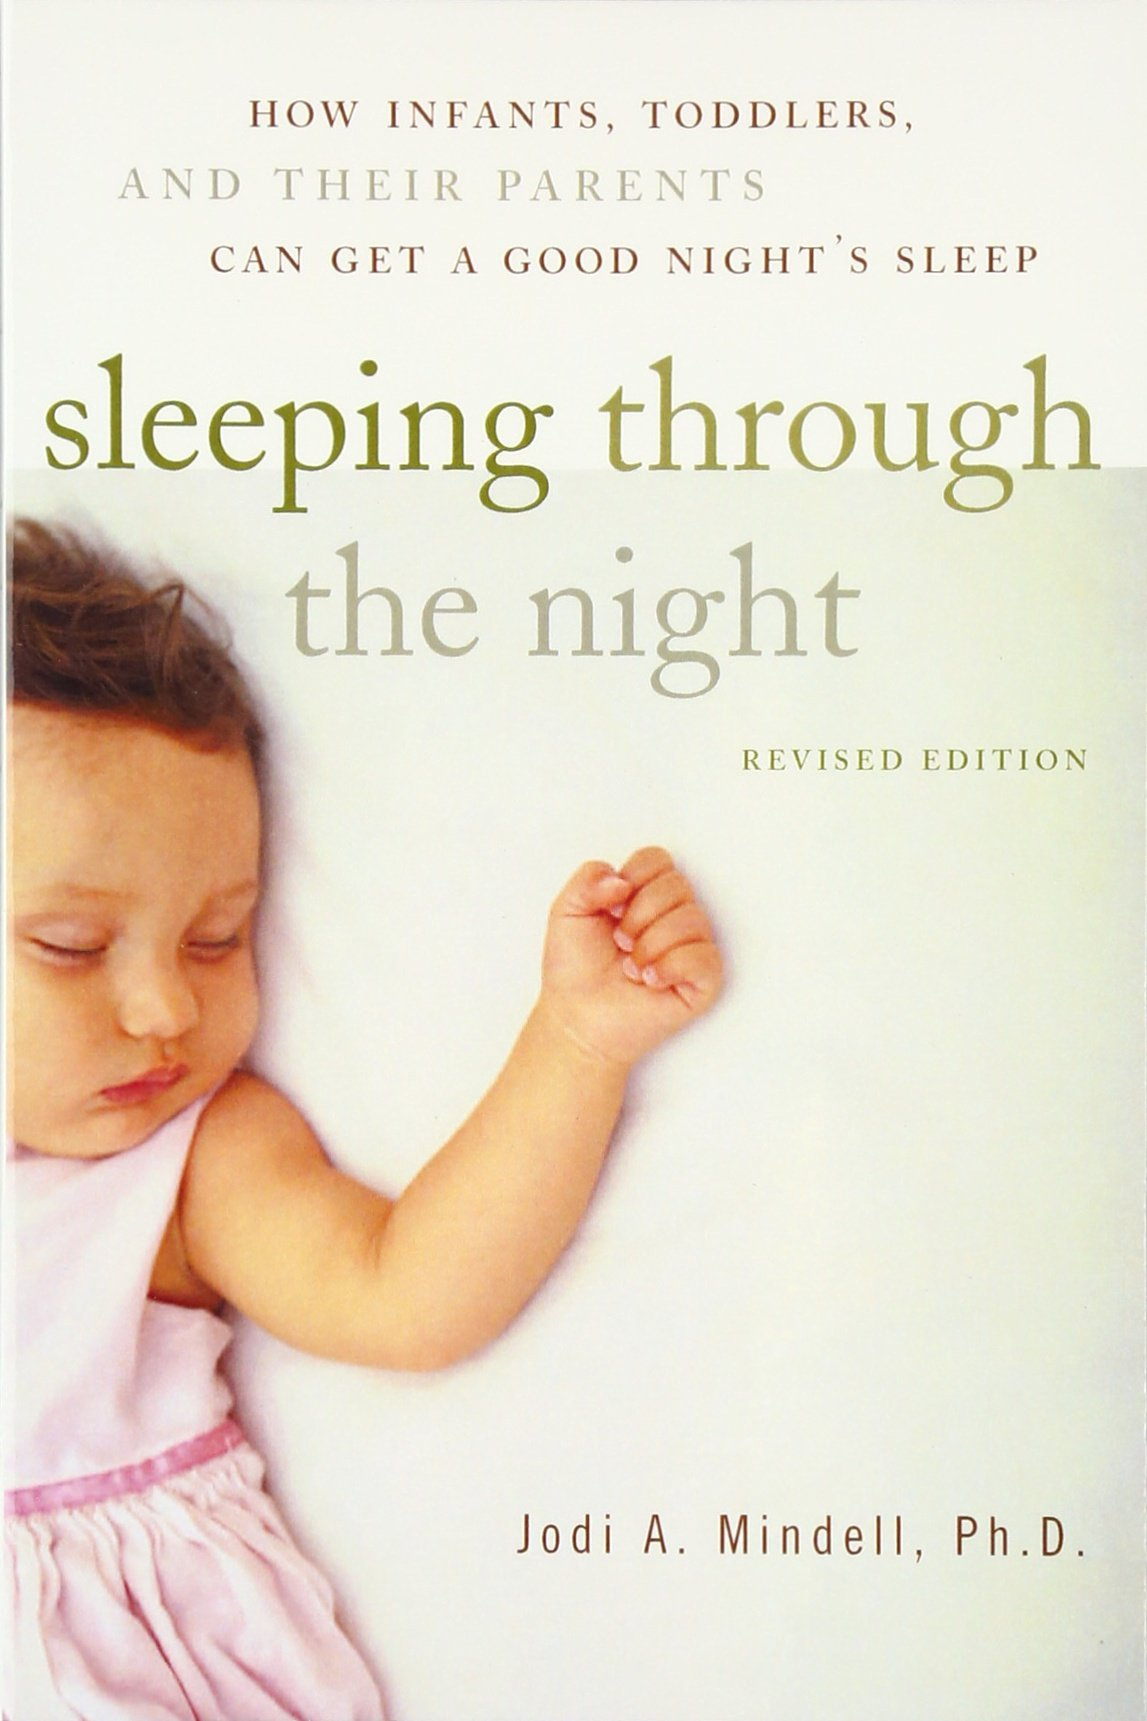 Sleeping Through Night Revised Toddlers product image